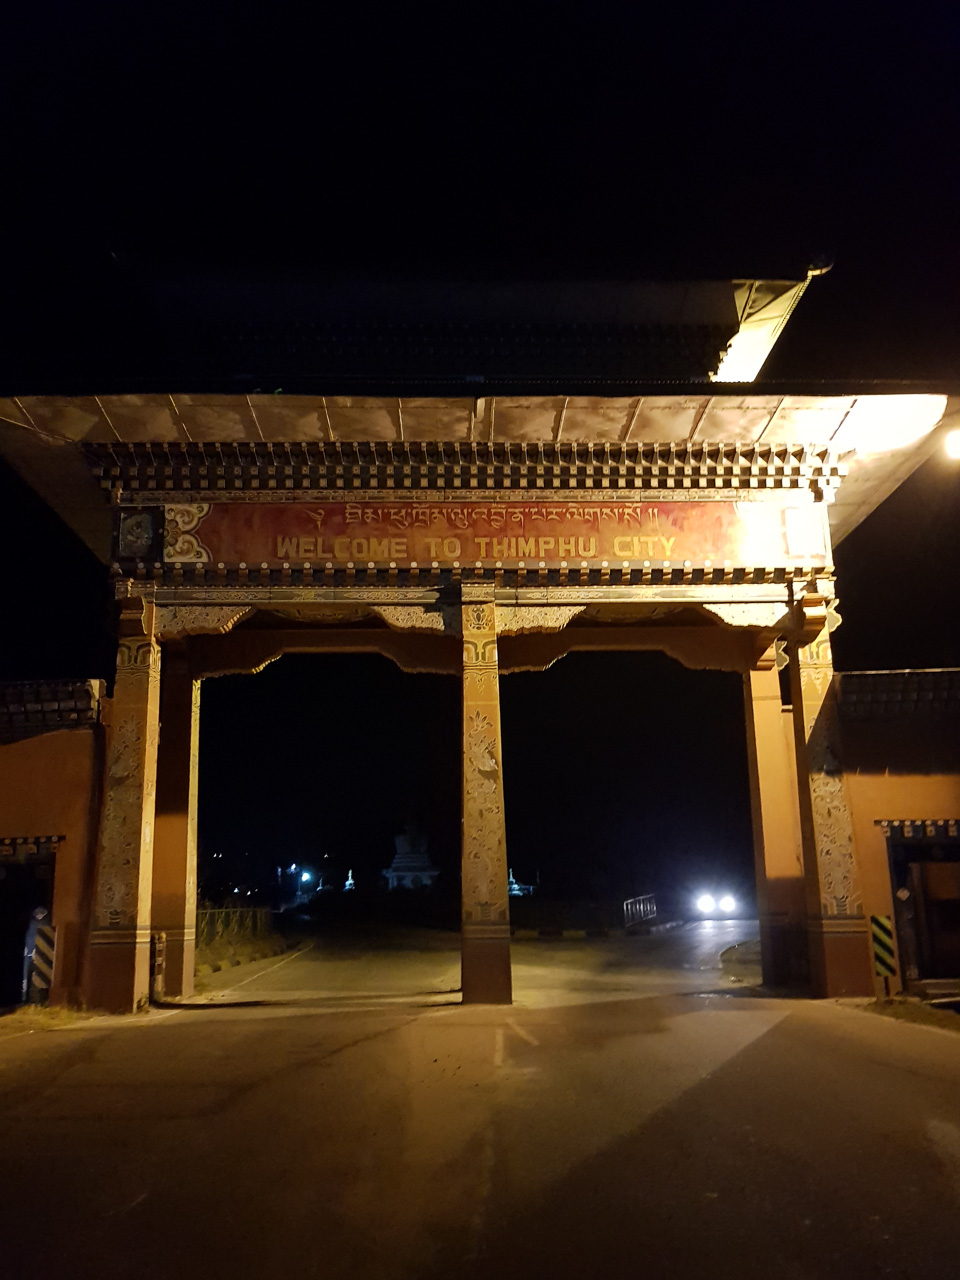 The gate to Thimphu